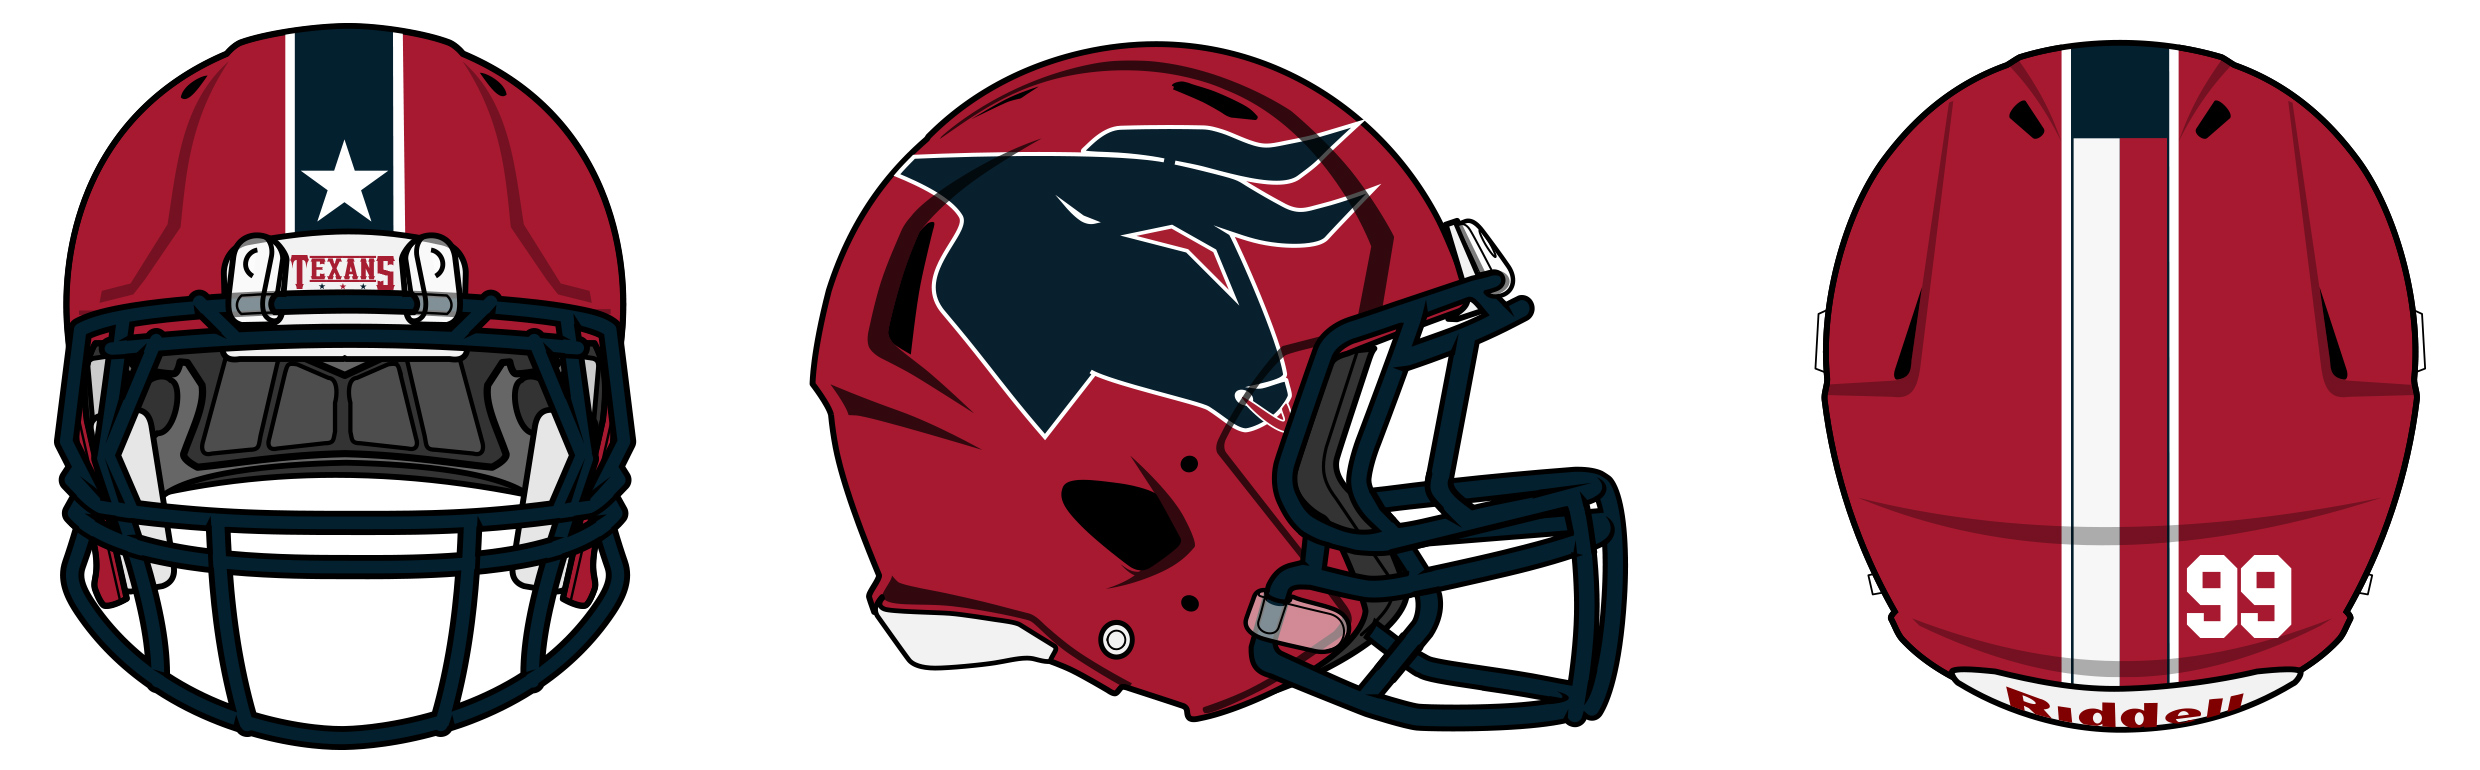 New Houston Texans Logo Uniform Design Concepts And